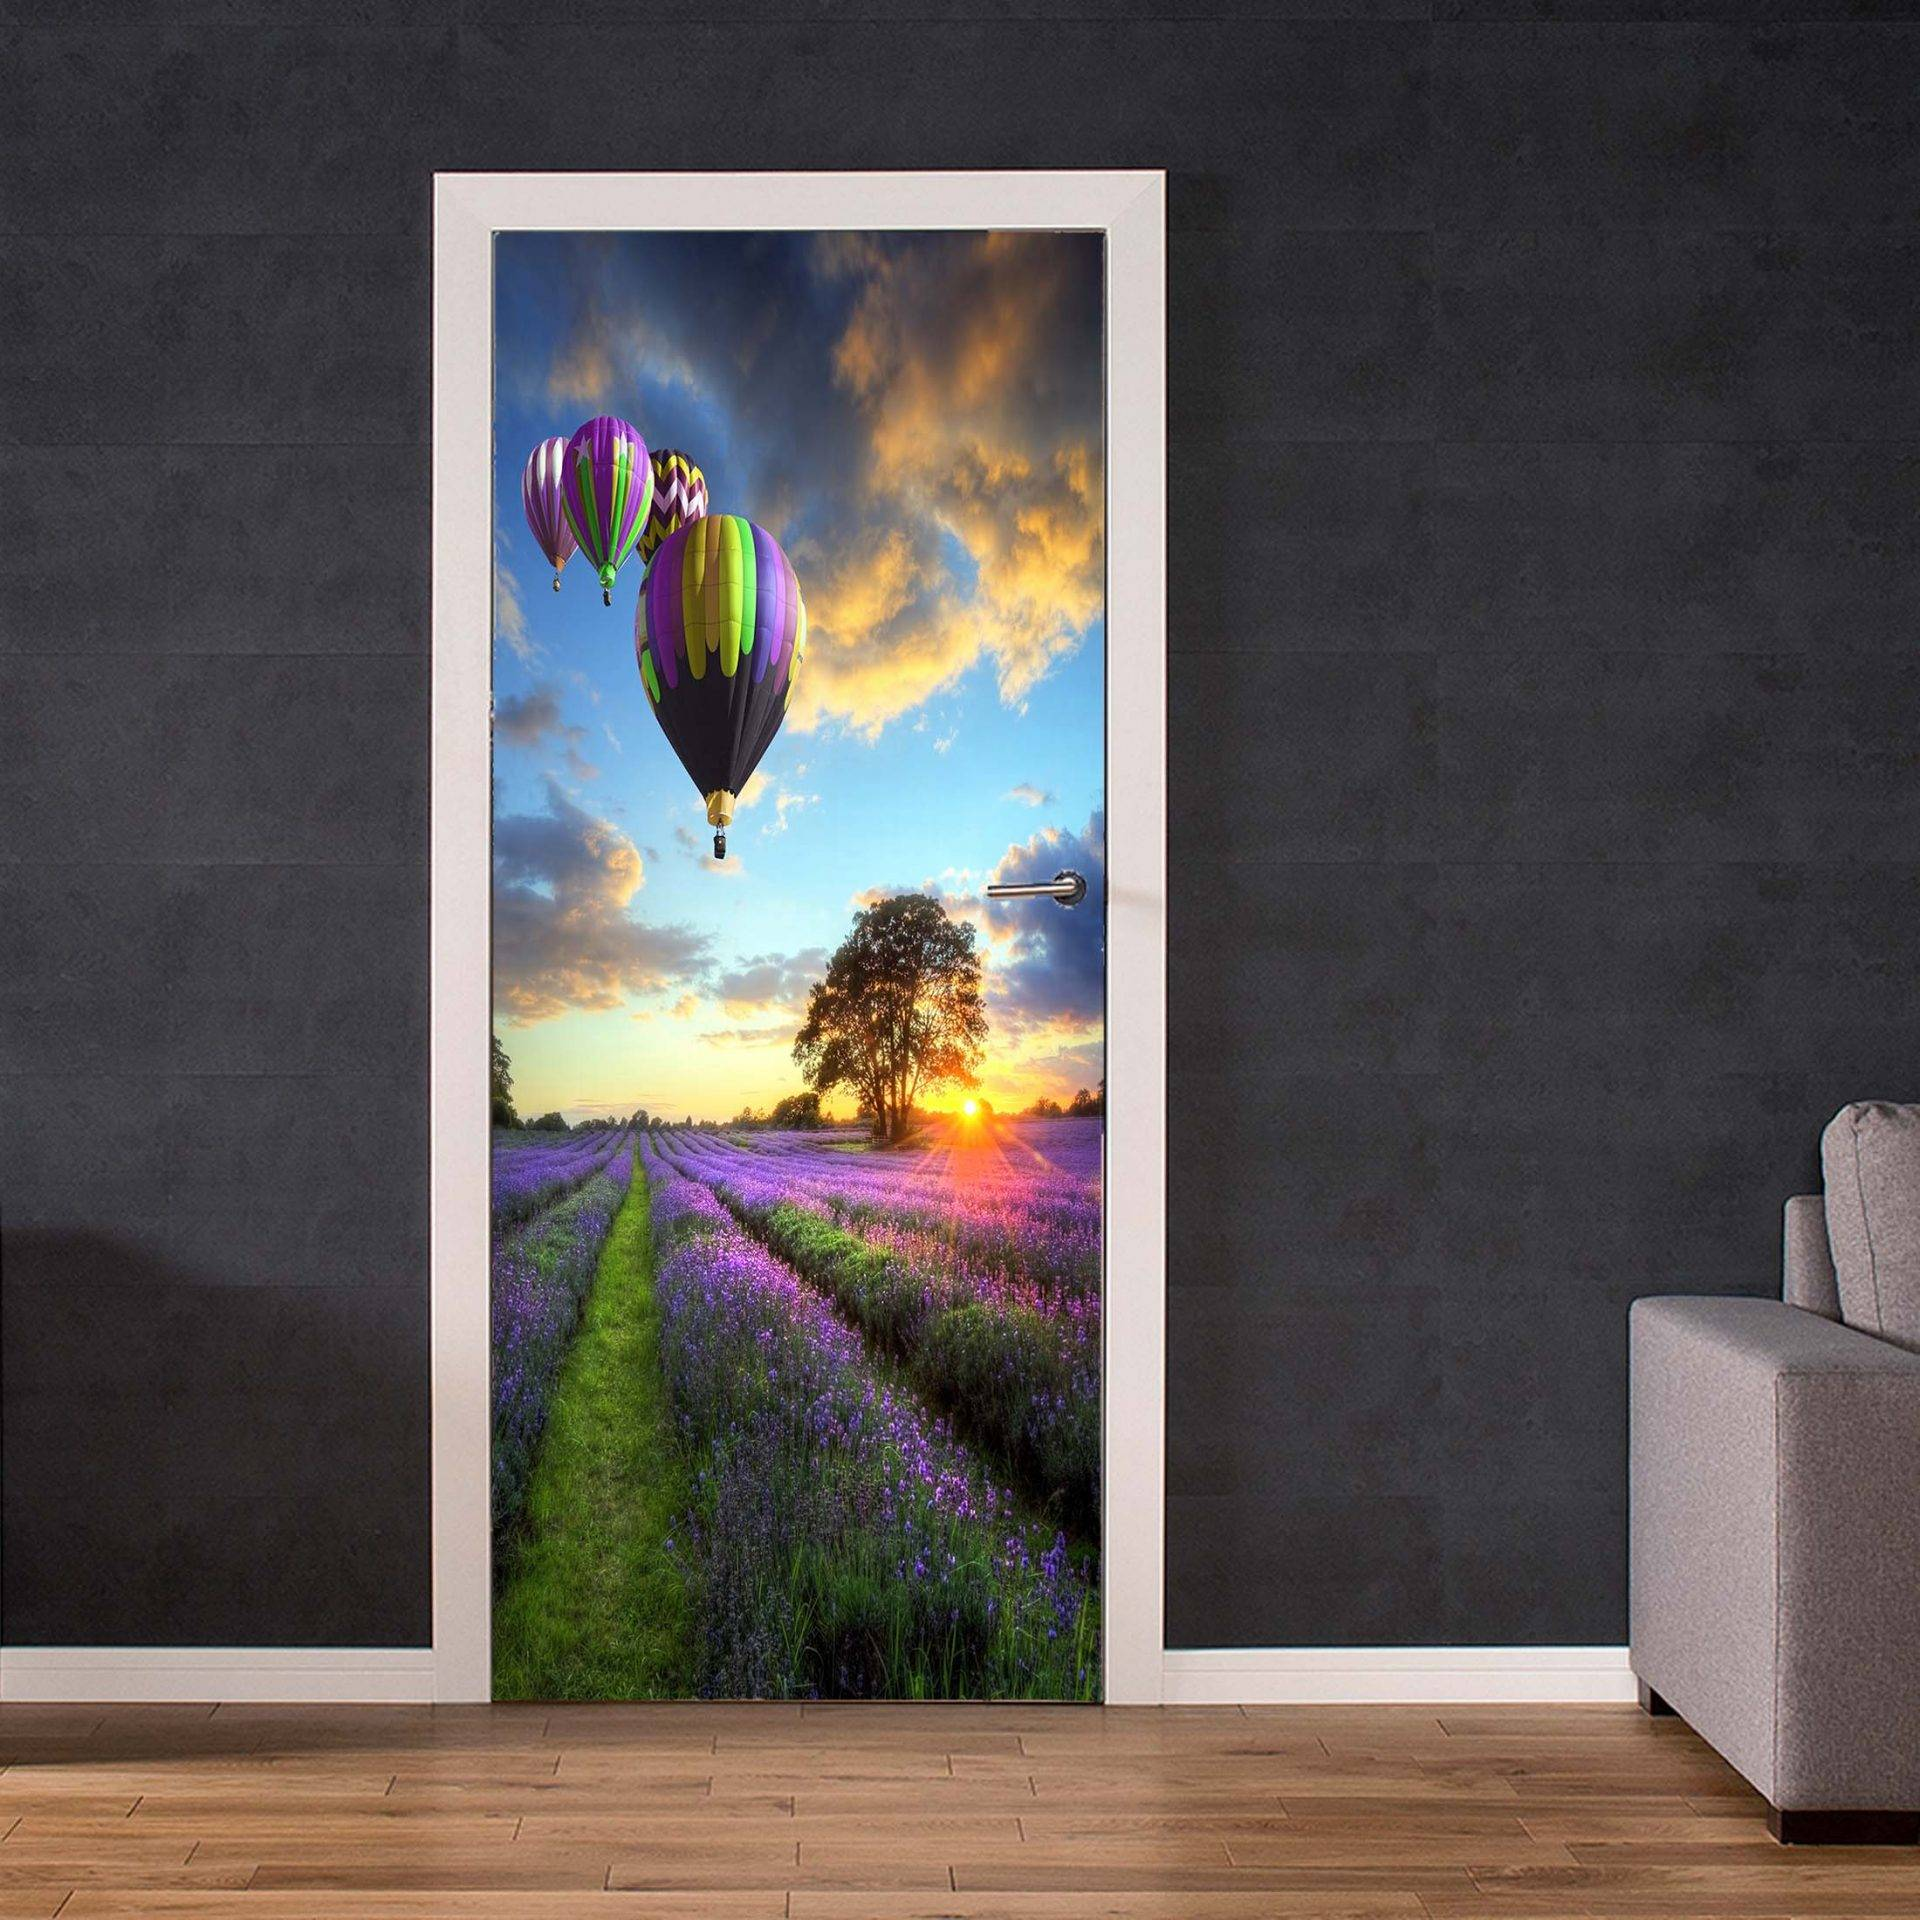 Balloons and Lavender Fields Door Decal Laminated Self Adhesive Sticker Art Mural